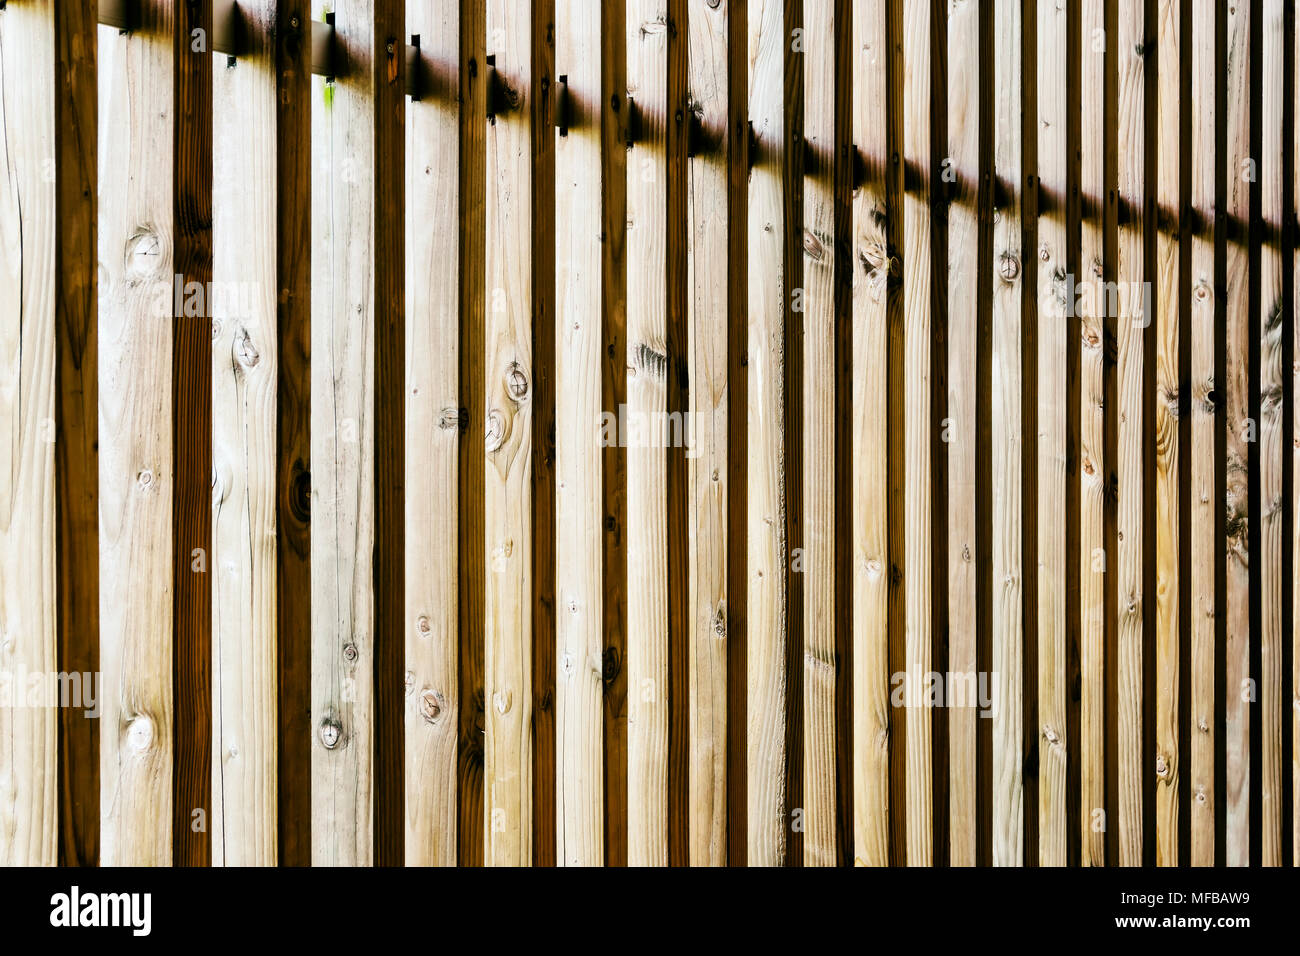 Vertical Wood Slat Wall Regular Pattern Of Vertical Wooden Slats At Chapel Of